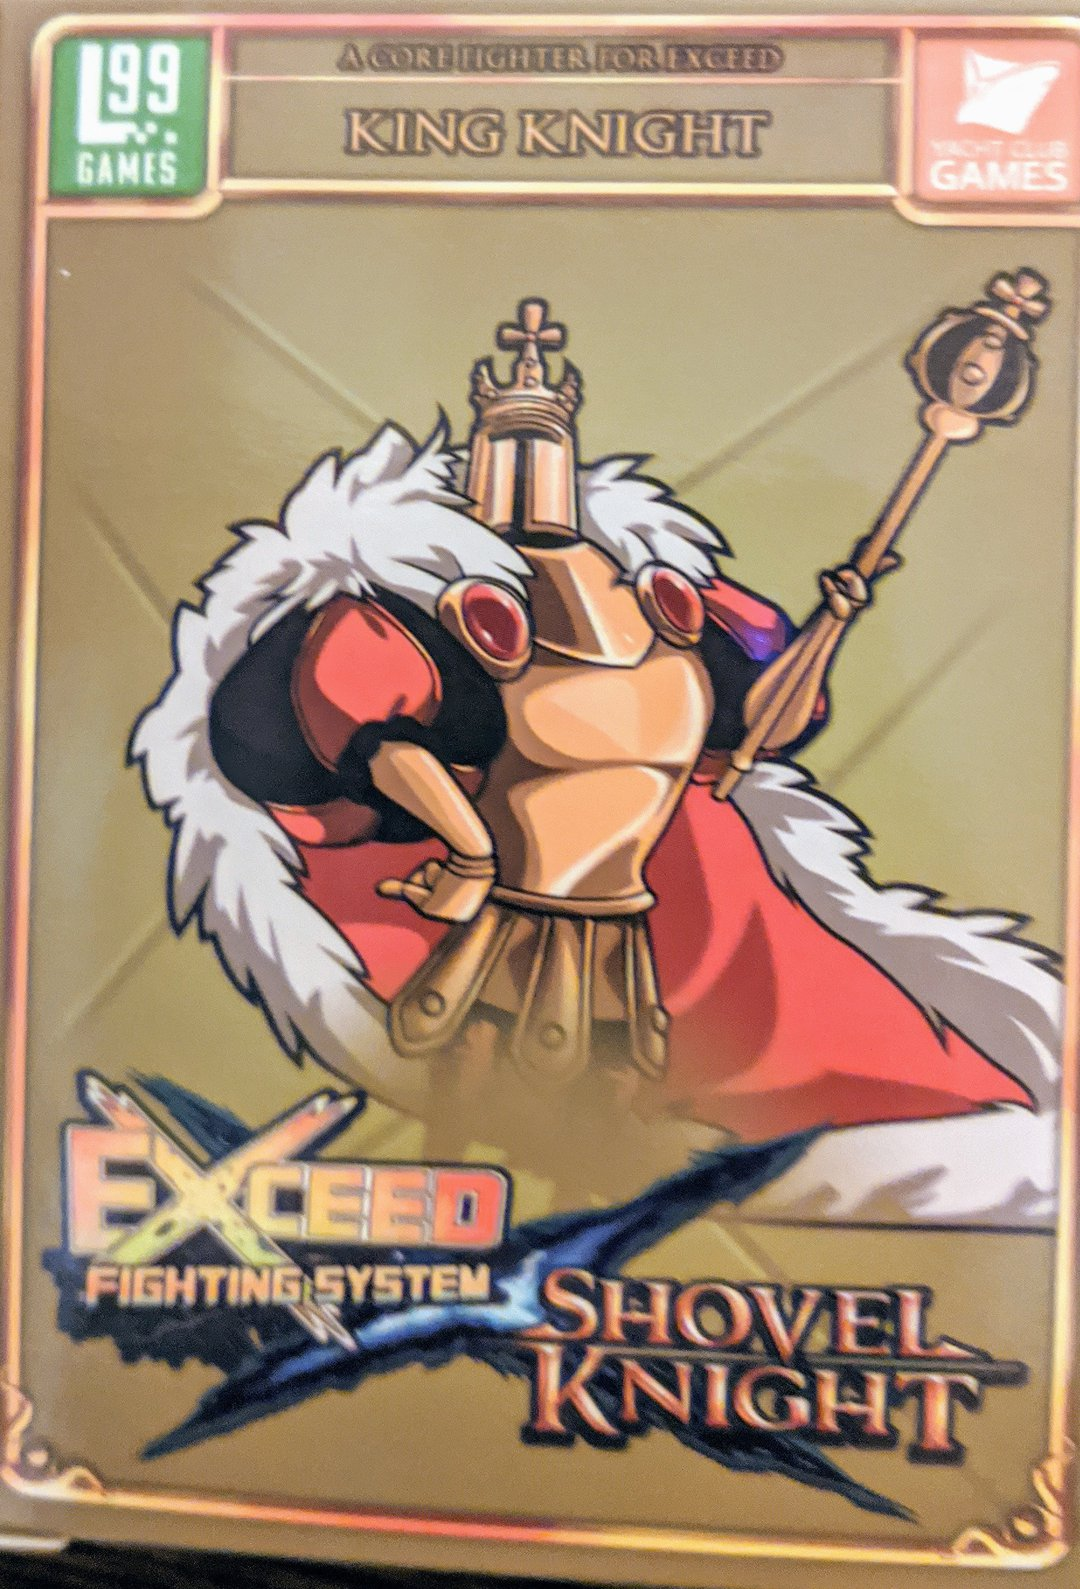 exceed shovel knight king